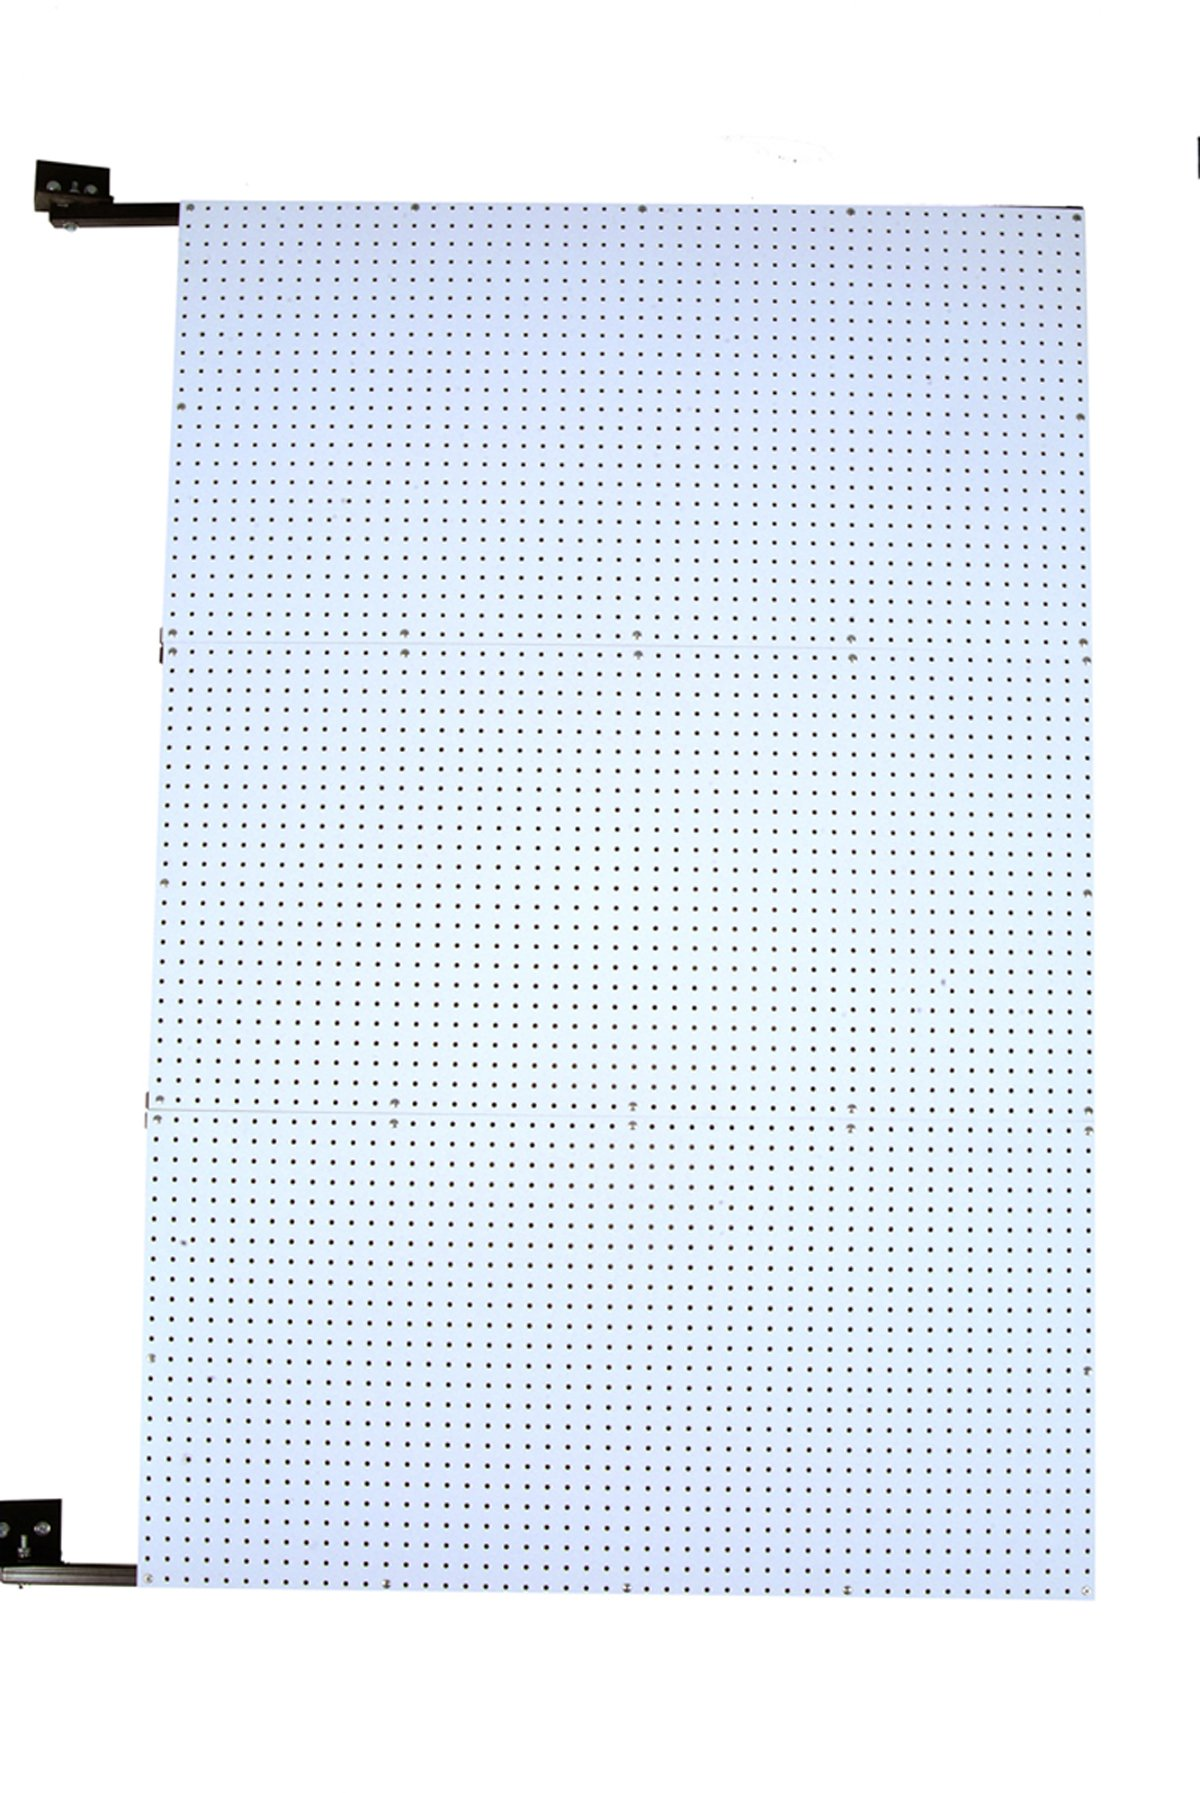 Triton Products W1-D XtraWall Wall Mount Double-Sided Polypropylene Swing Panel Pegboard 48-Inch W by 72-Inch H by 1-1/2-Inch D